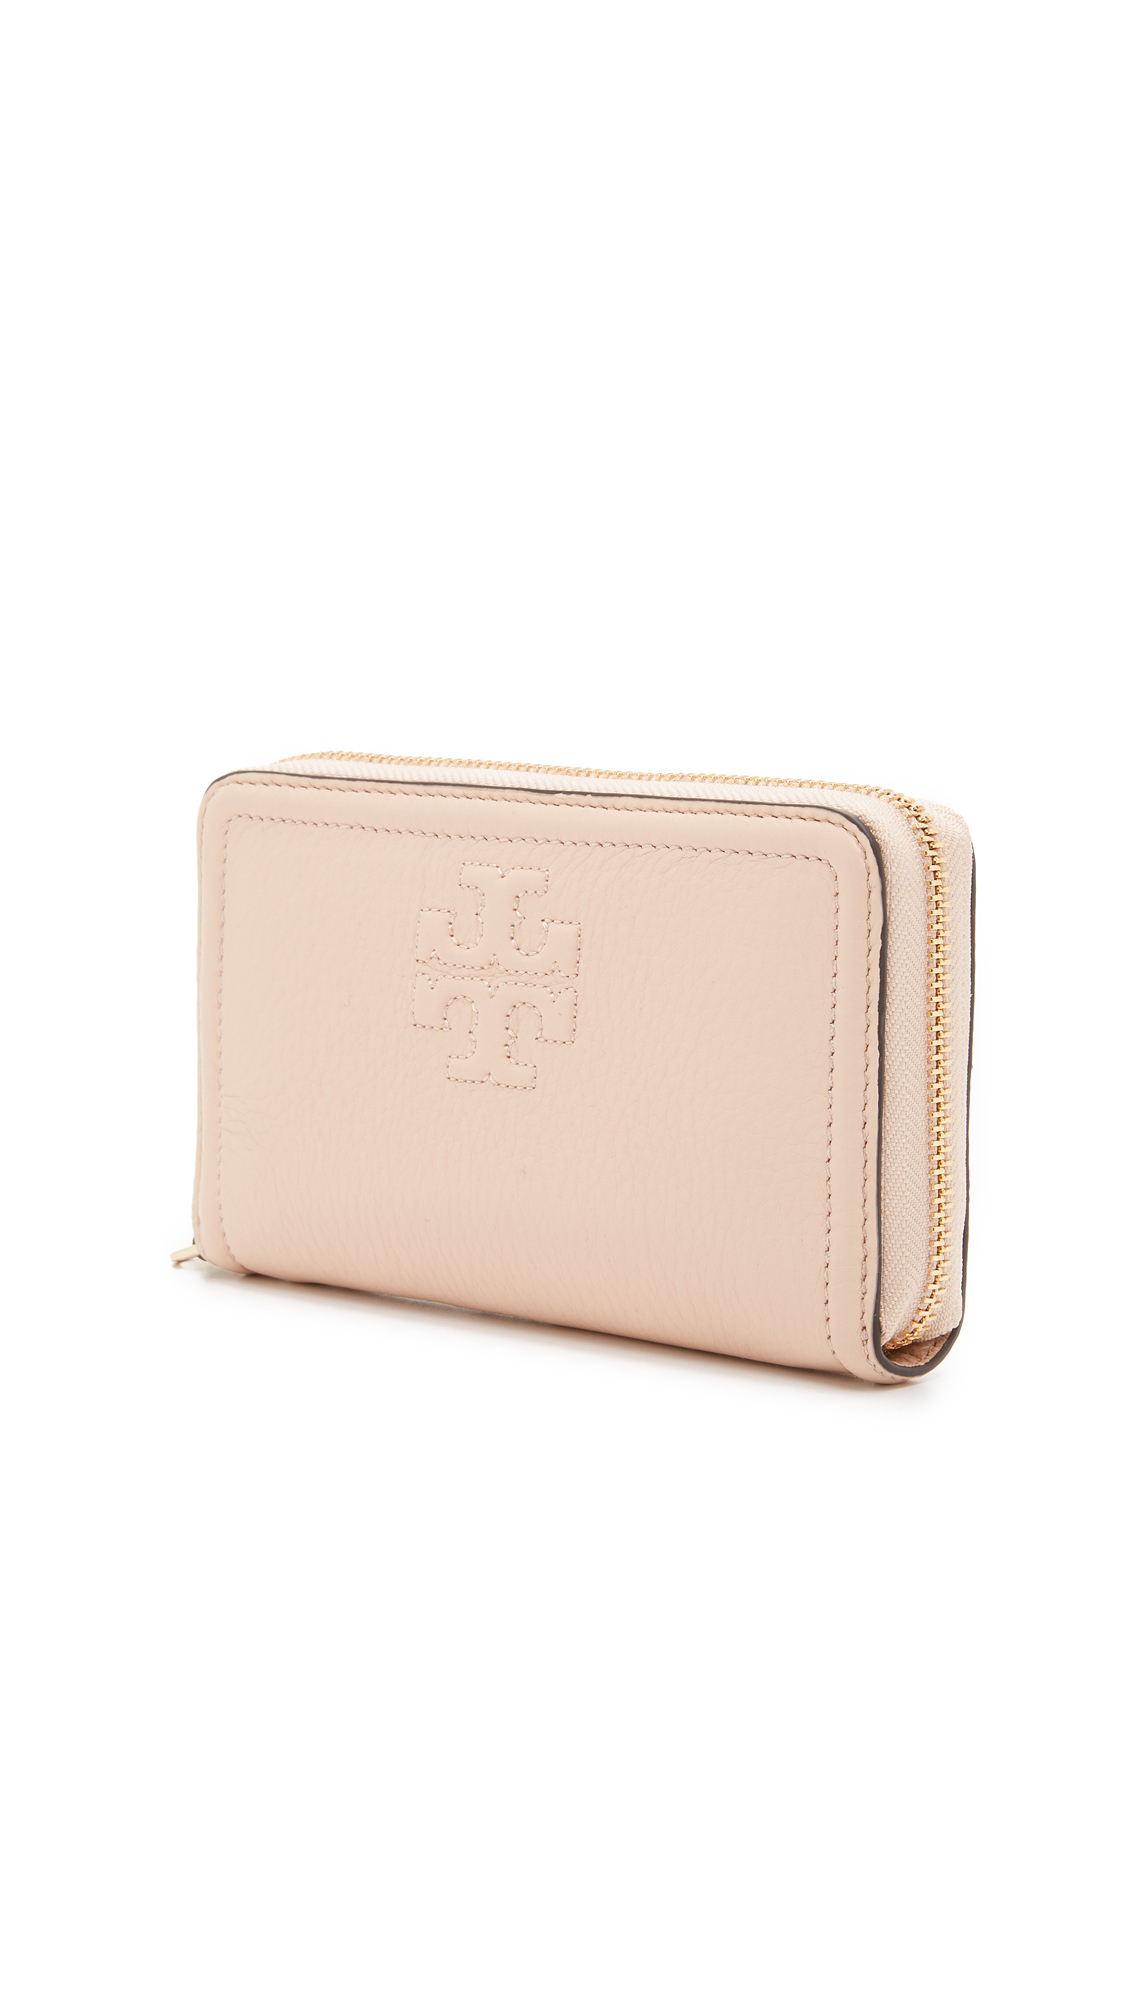 23d954cba3 Tory Burch Thea Zip Around Wristlet Wallet in Natural - Lyst